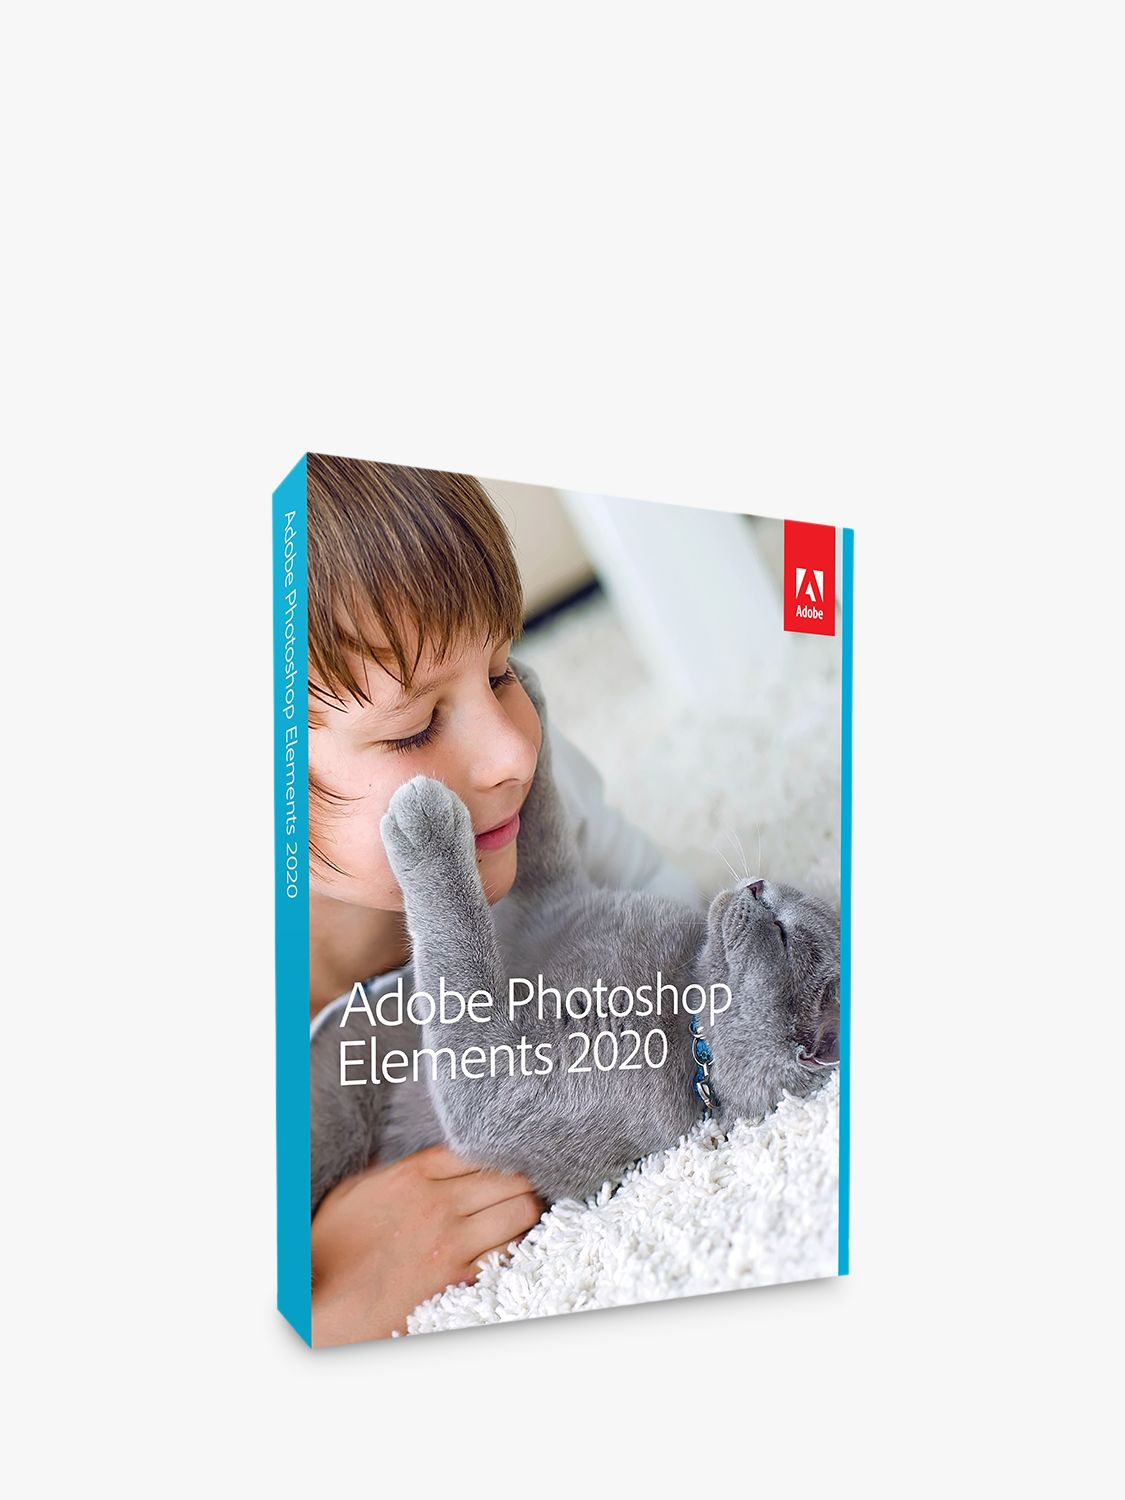 Adobe Adobe Photoshop Elements 2020, Photo Editing Software